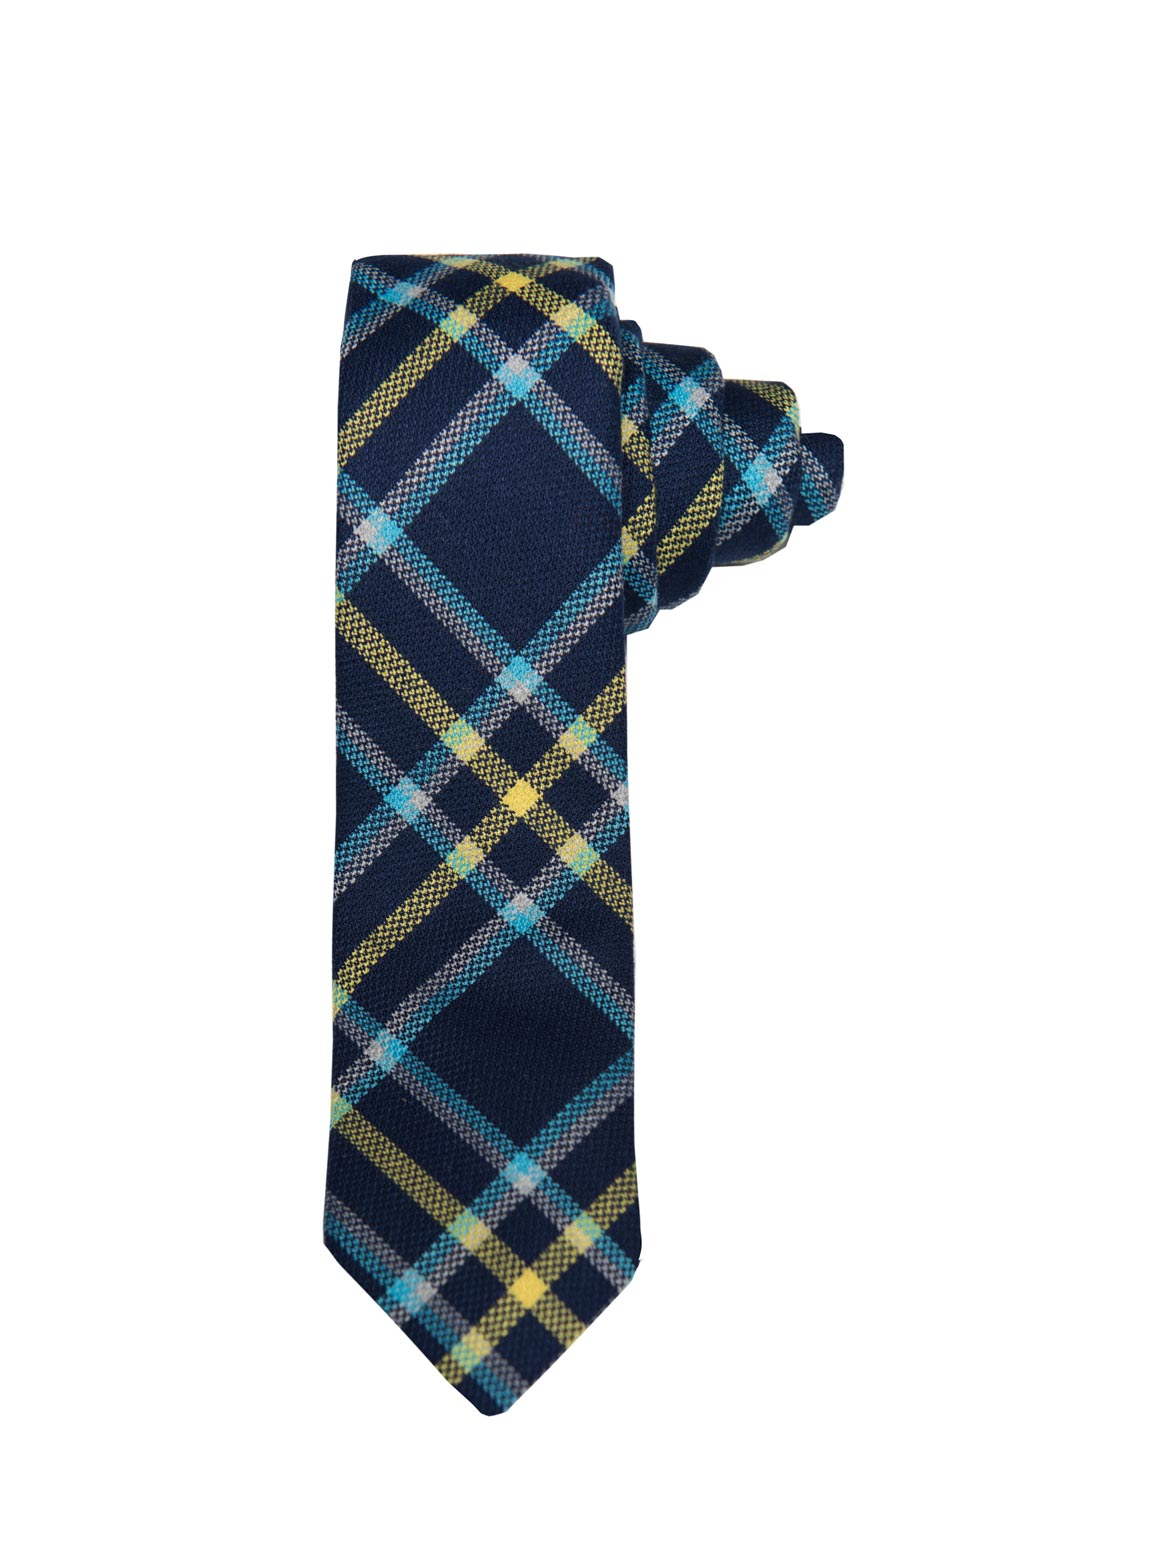 paisley & gray blue & yellow plaid slim tie is a menswear staple for easy styling 2124t